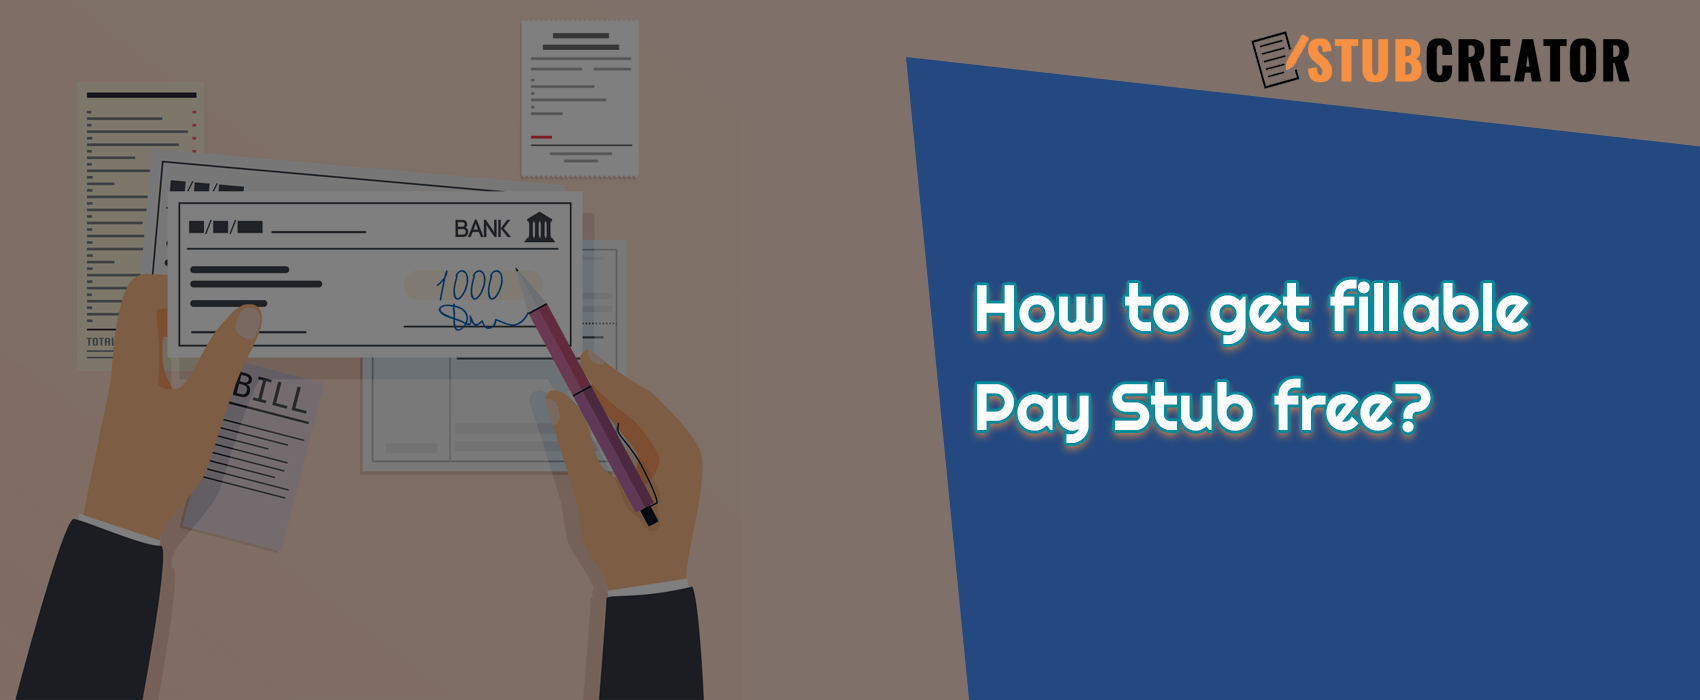 hight resolution of how to get fillable pay stub free